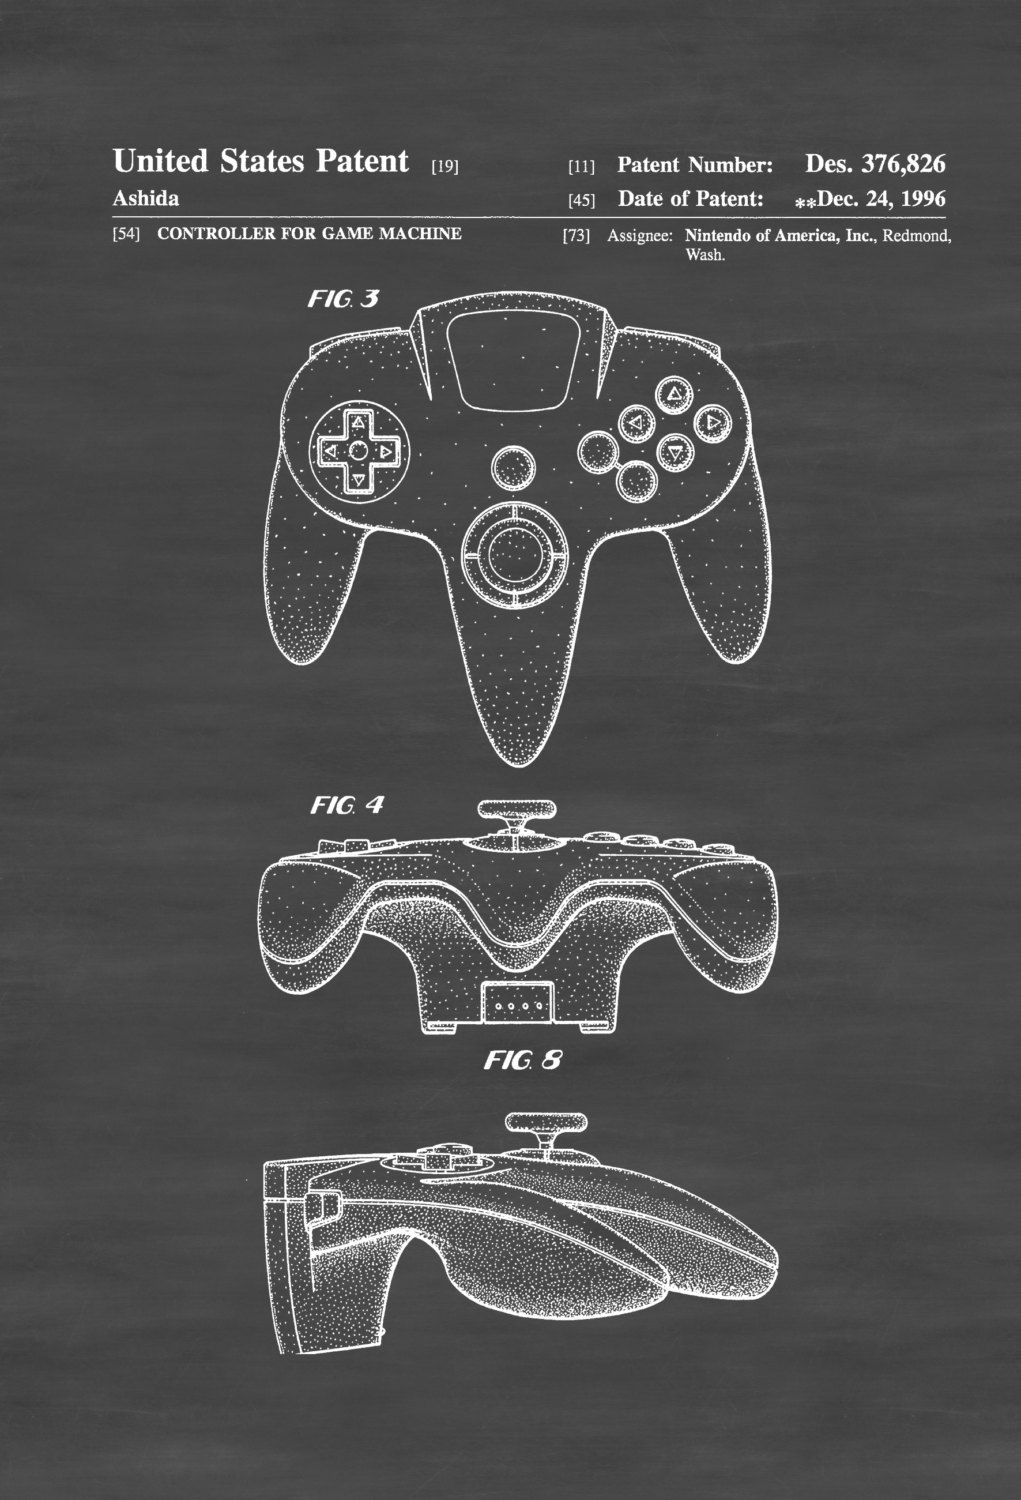 nintendo 64 controller patent patent print wall decor nintendo art nintendo poster nintendo 64 poster nintendo patent nintendo 64 [ 1021 x 1500 Pixel ]